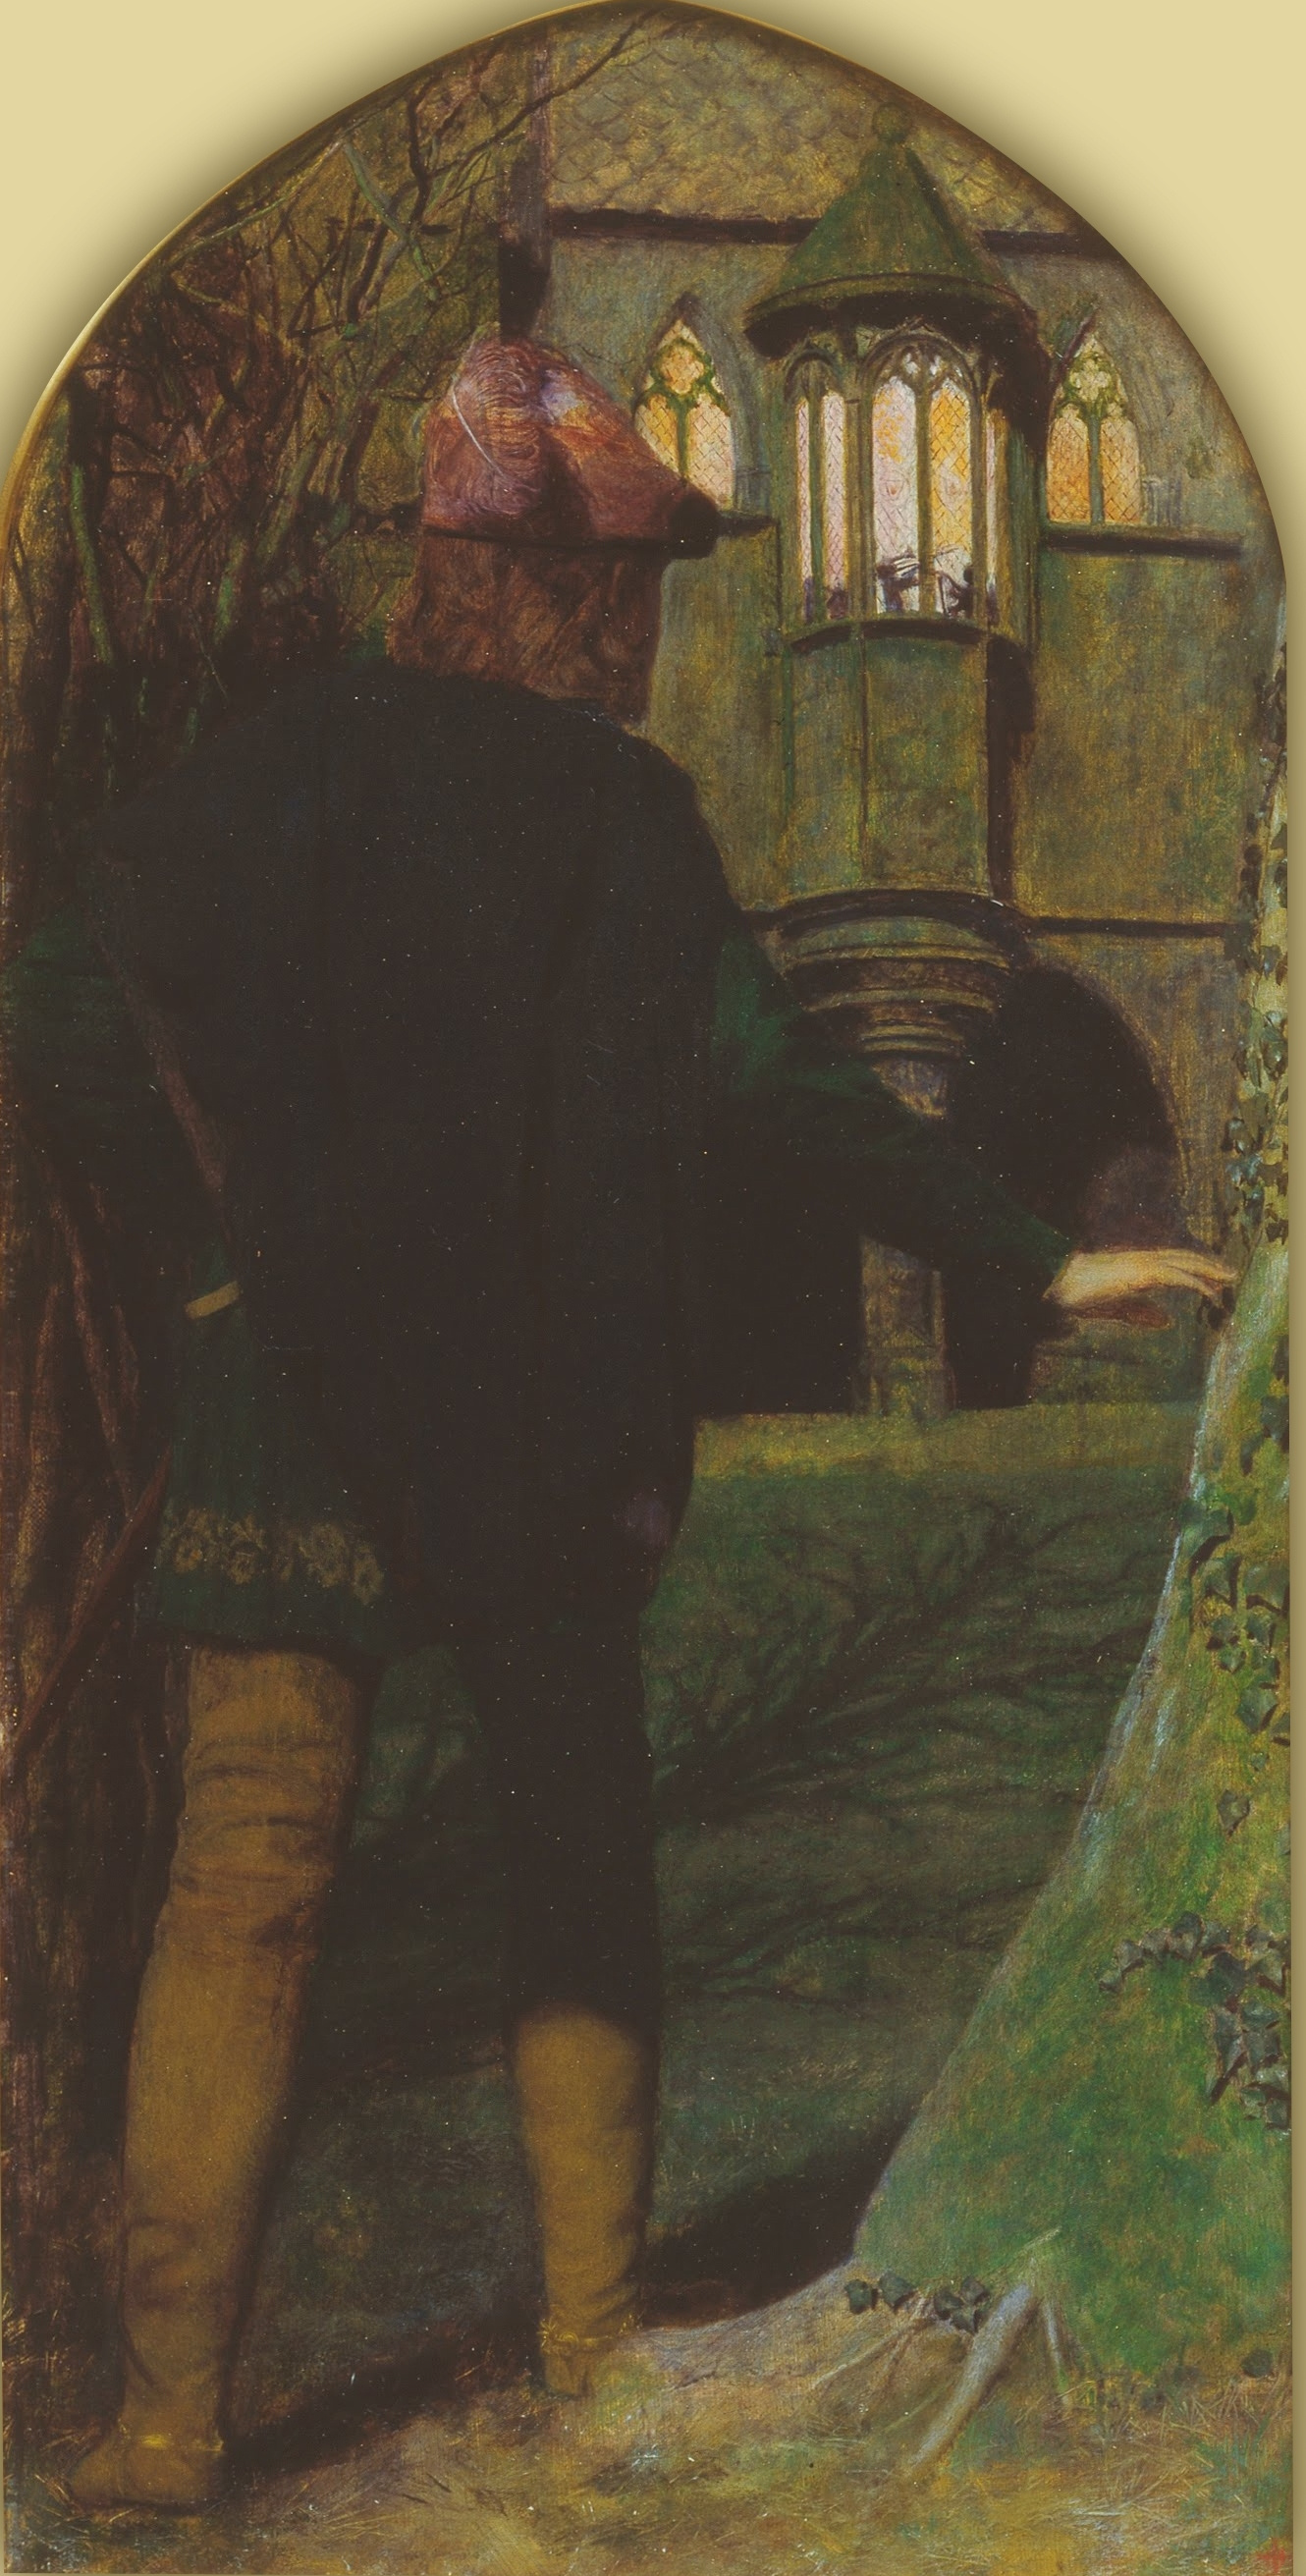 Arthur Hughes. Triptych: Eve of St. Agnes Day. Left panel